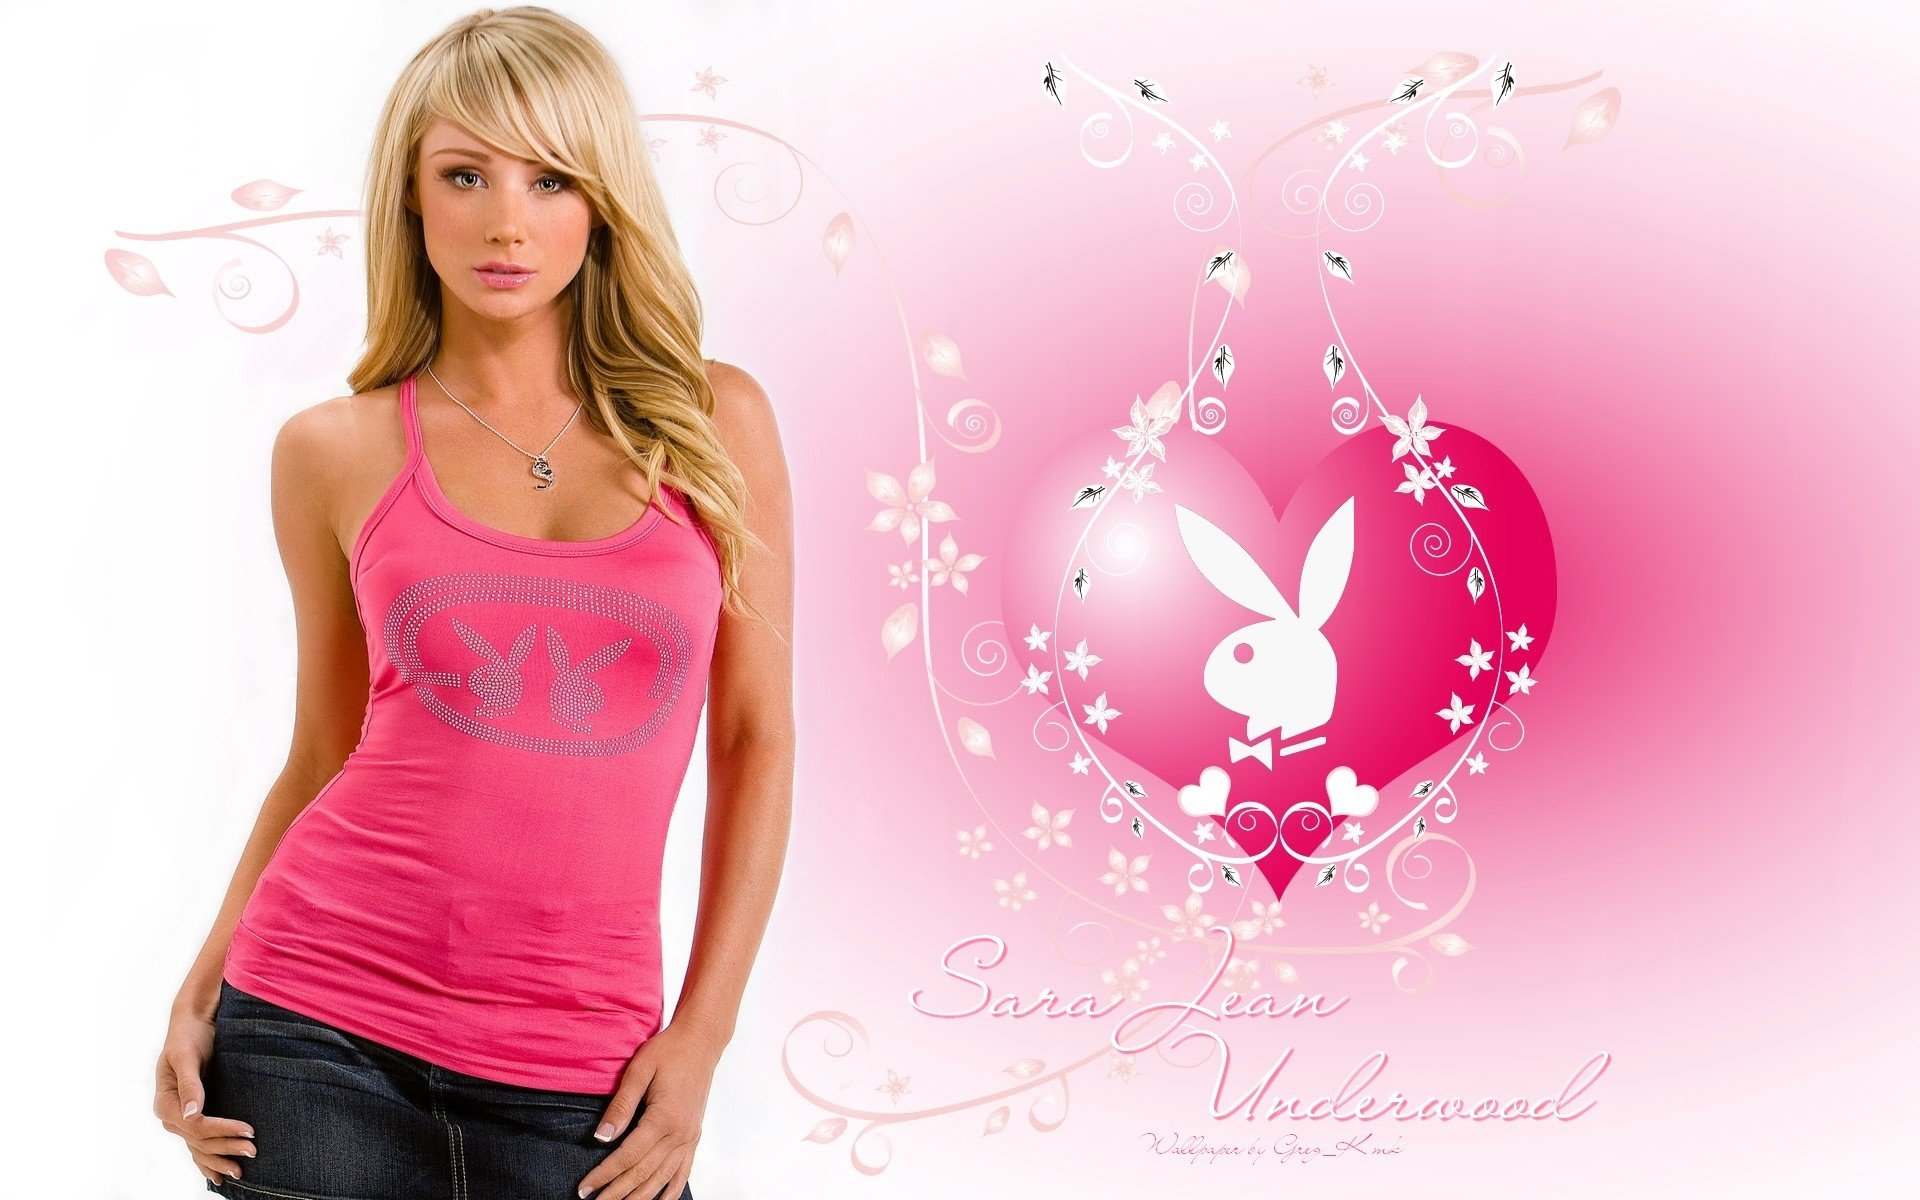 Awesome Sara Jean Underwood free wallpaper ID:318593 for hd 1920x1200 desktop